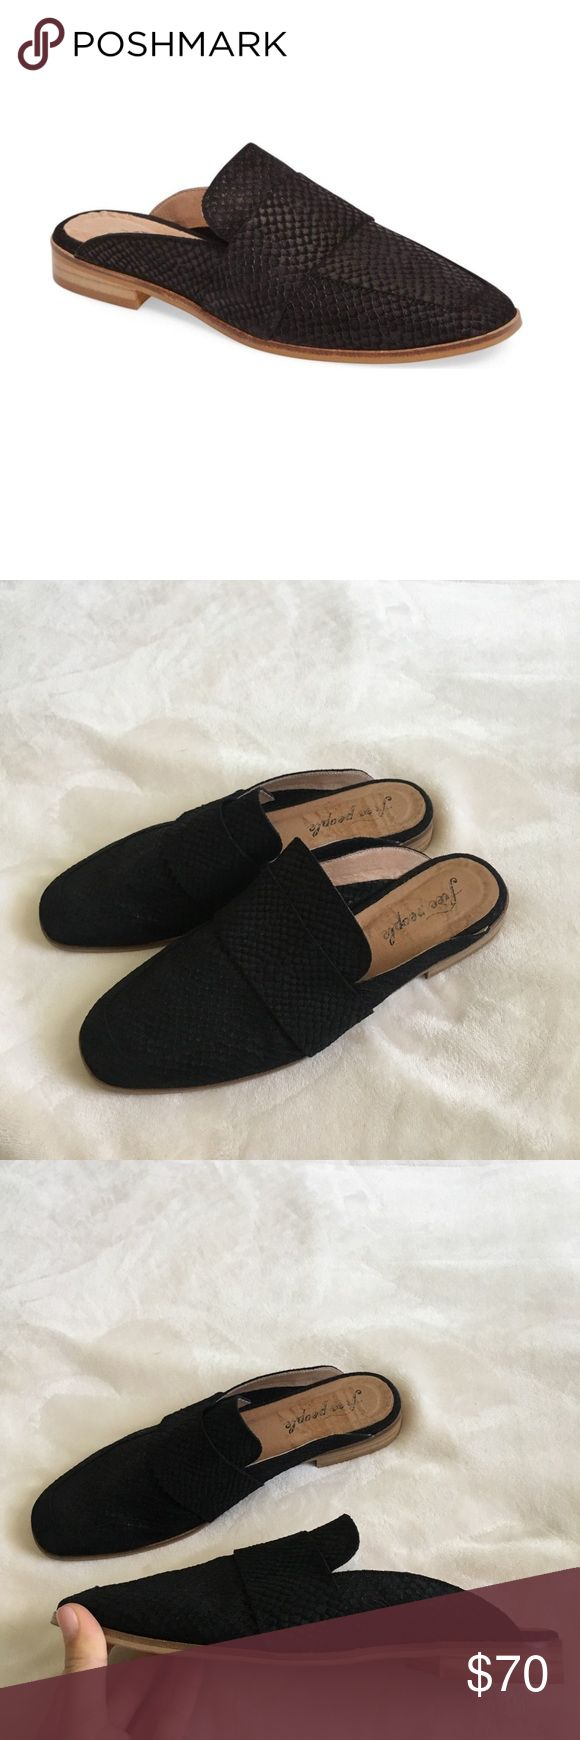 """Free People """"at ease"""" slide Black slide WOMENS size 39 fits like an 8.5 worn few times GREAT condition Free People Shoes Mules & Clogs"""